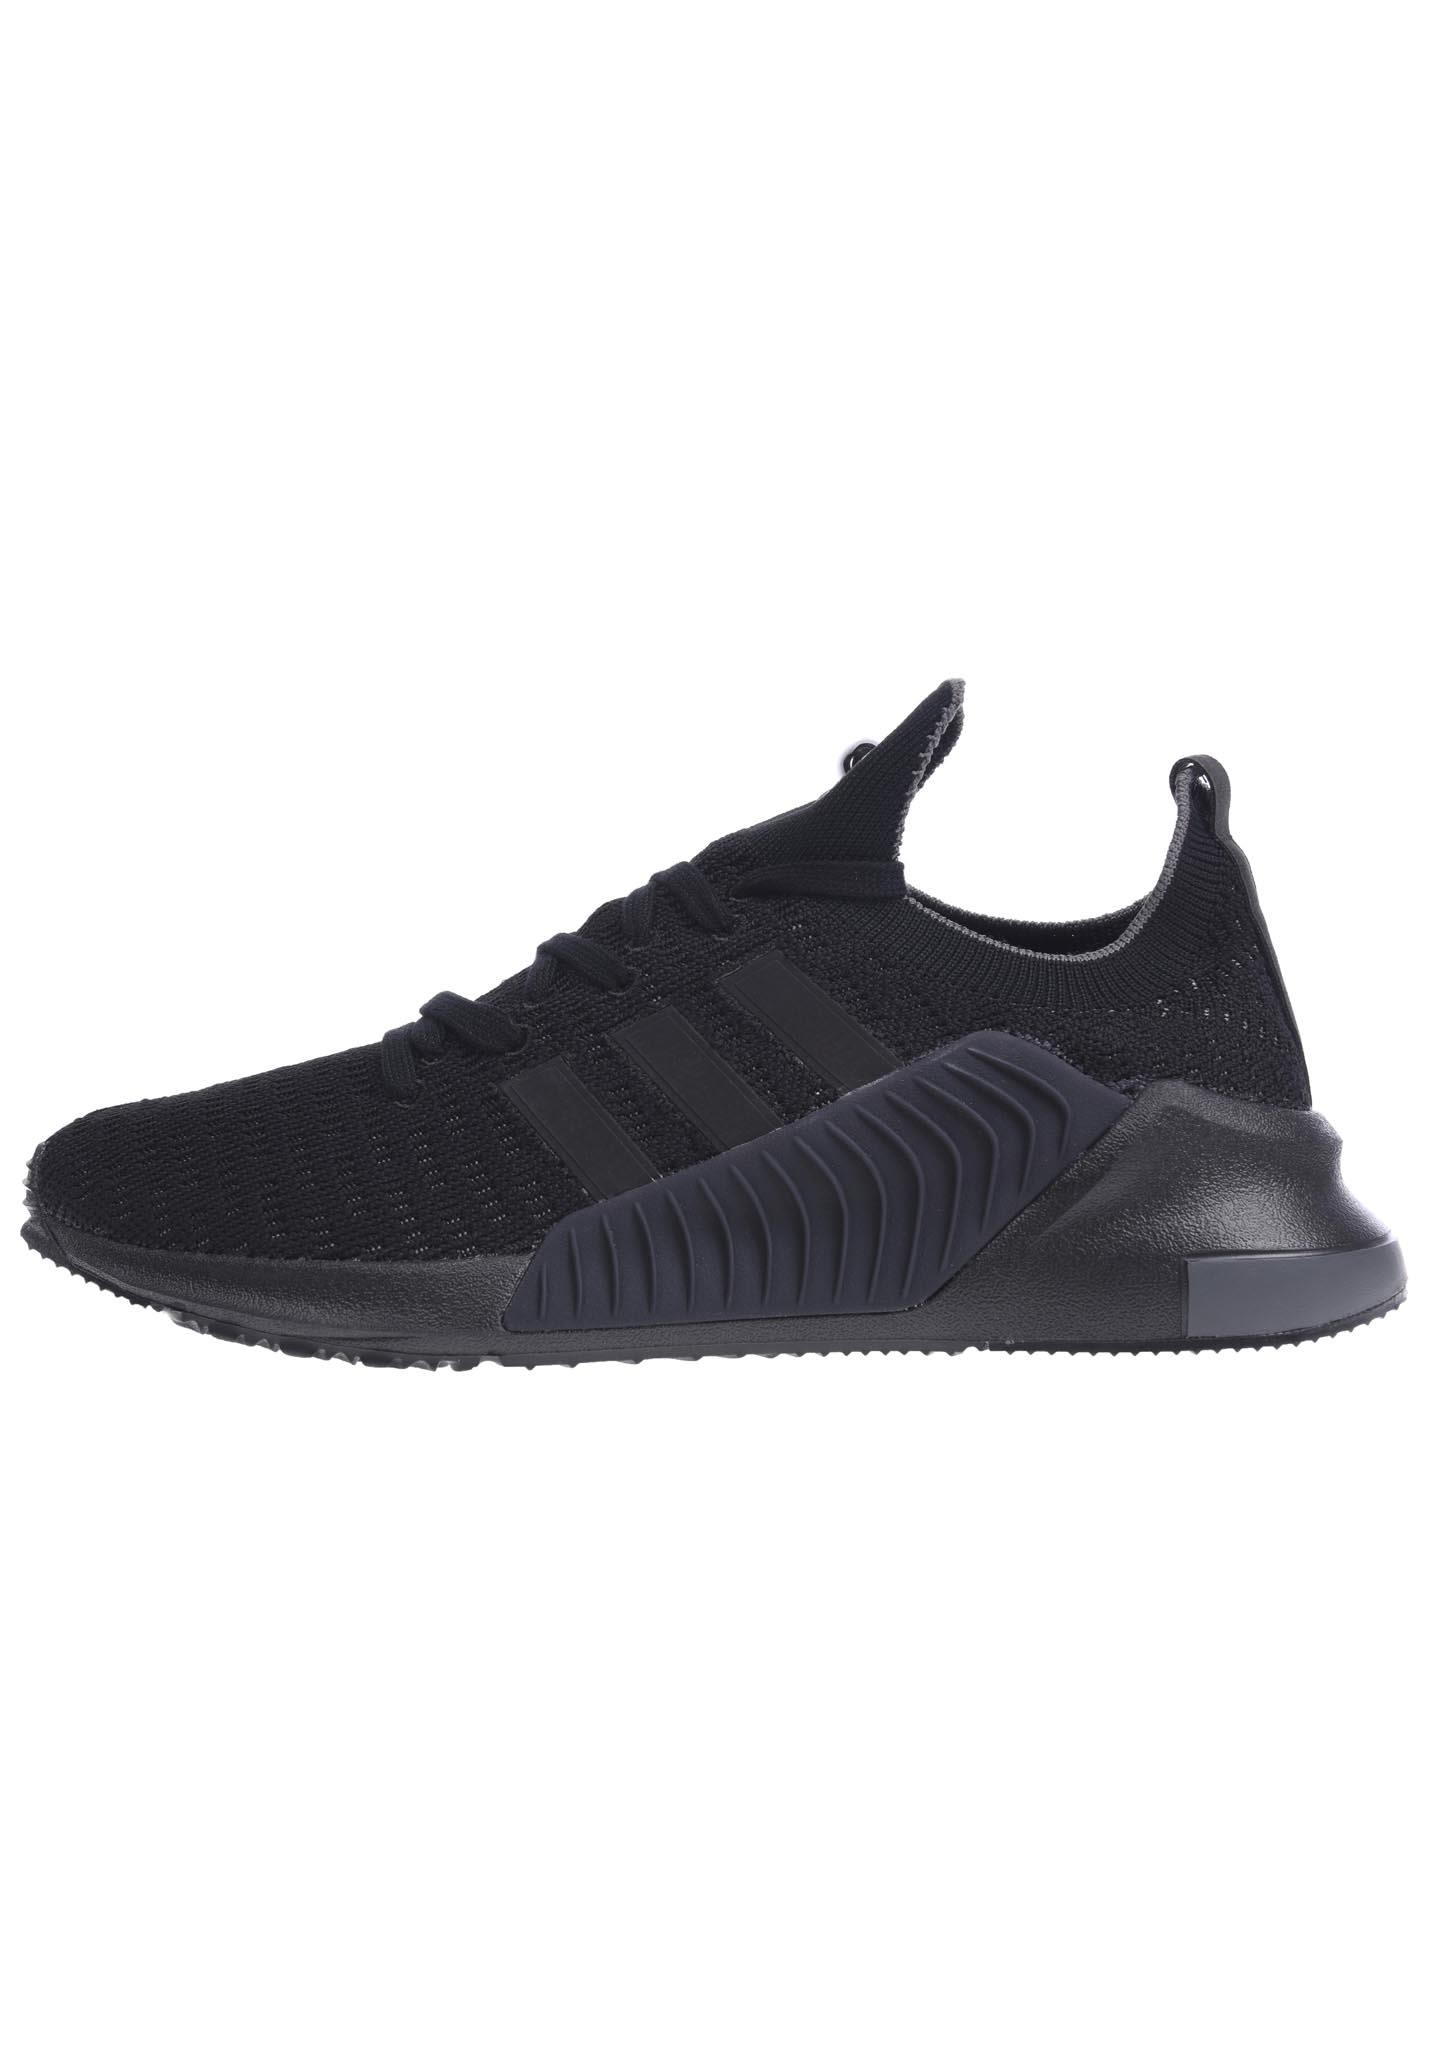 first look another chance clearance prices ADIDAS ORIGINALS Climacool 02/17 PK - Sneakers for Men - Black ...